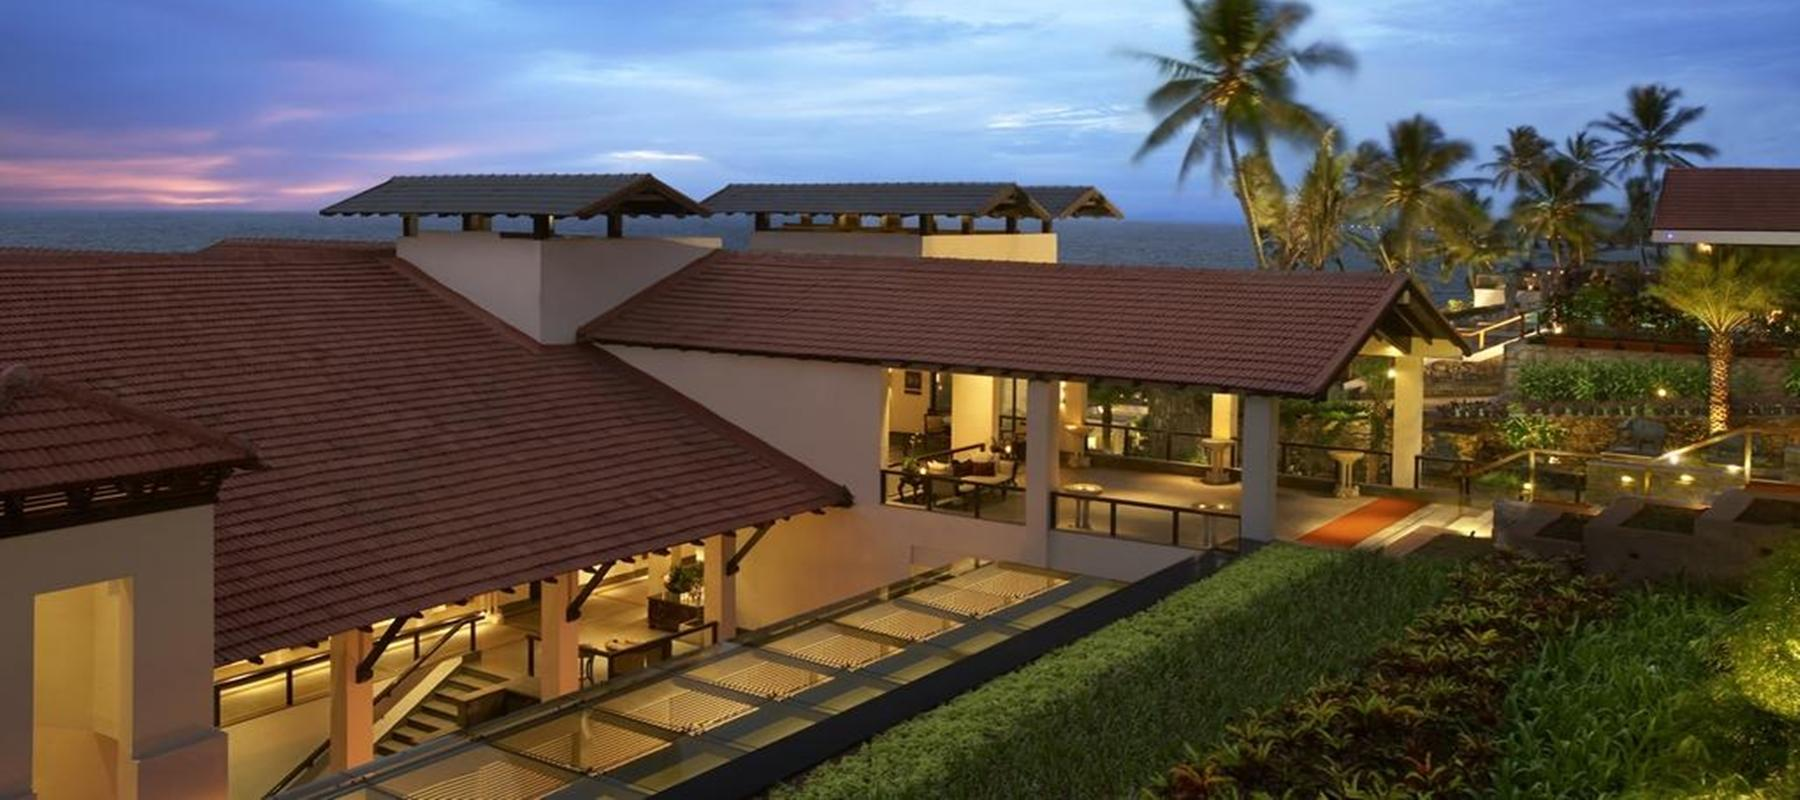 The Leela Kovalam